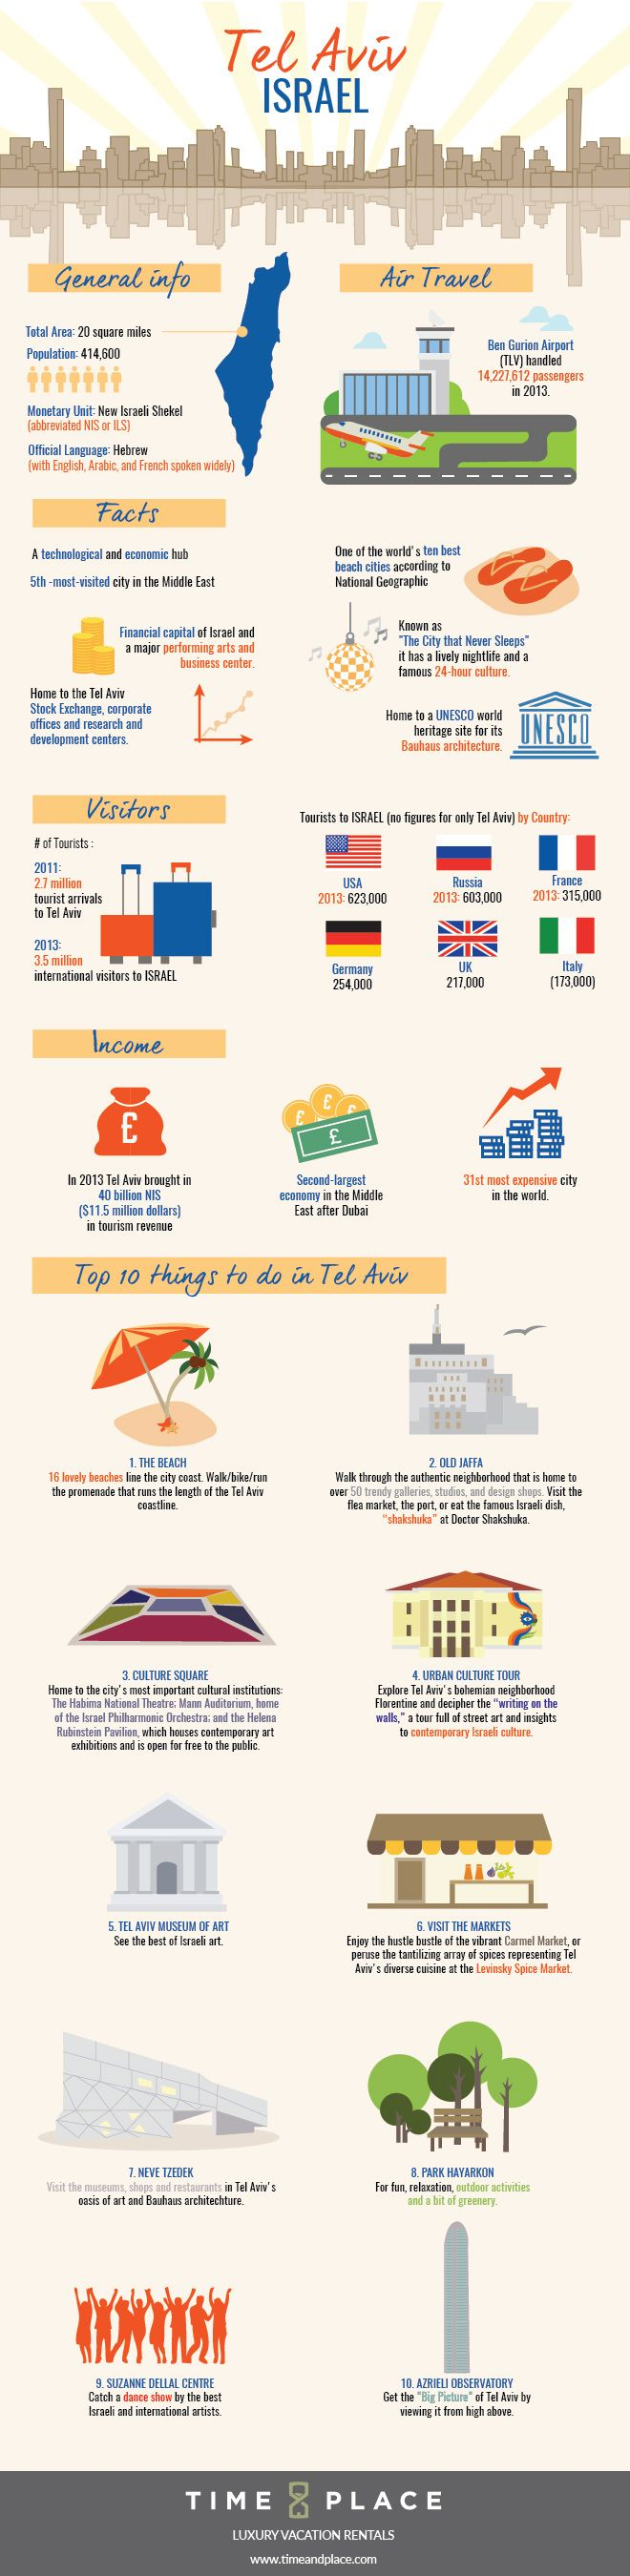 Tel Aviv Travel Infographic